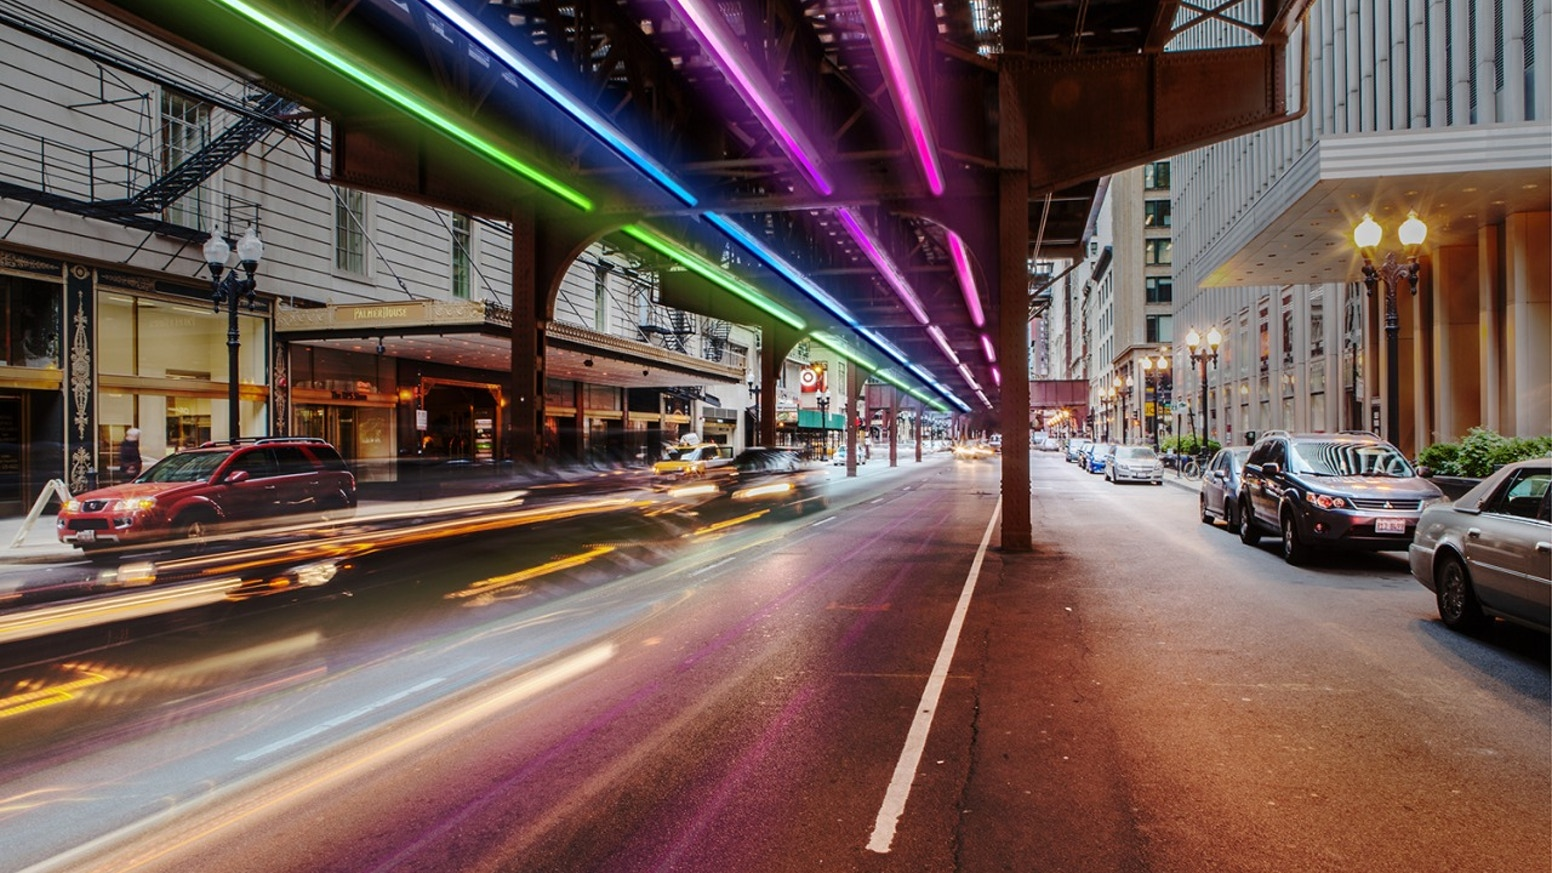 A site-specific light installation created by the public on the Wabash stretch of elevated train tracks (L) in Chicago's loop.